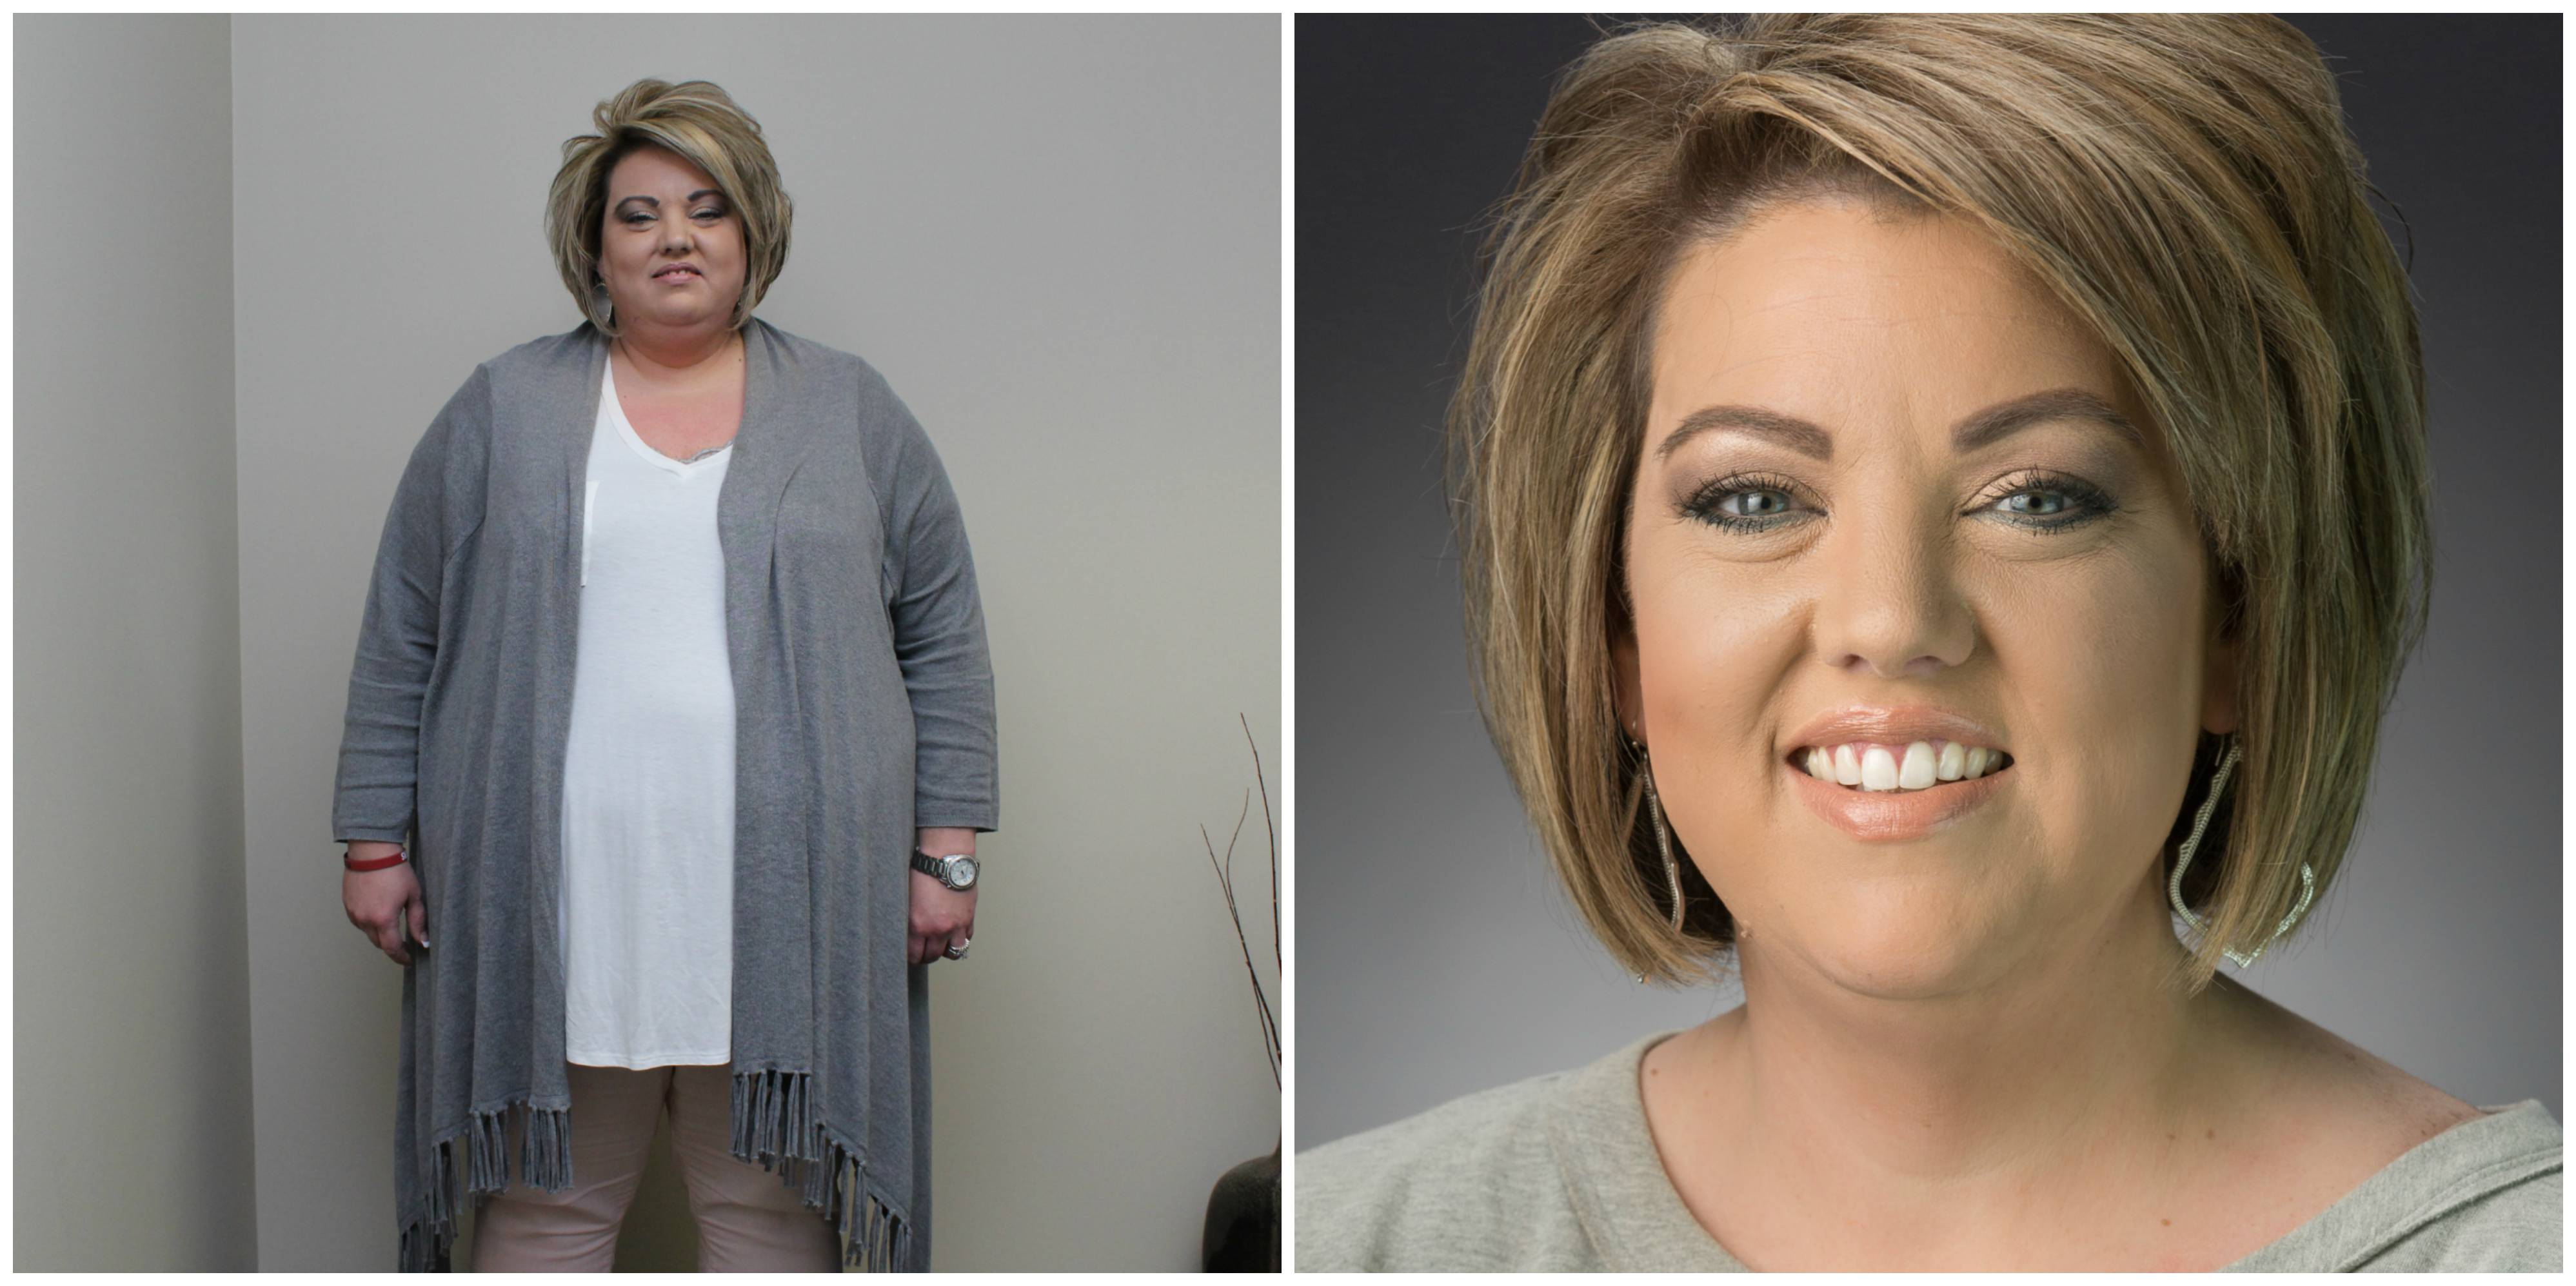 Heather Dodd before and after her surgery at Arkansas Heart Hospital.